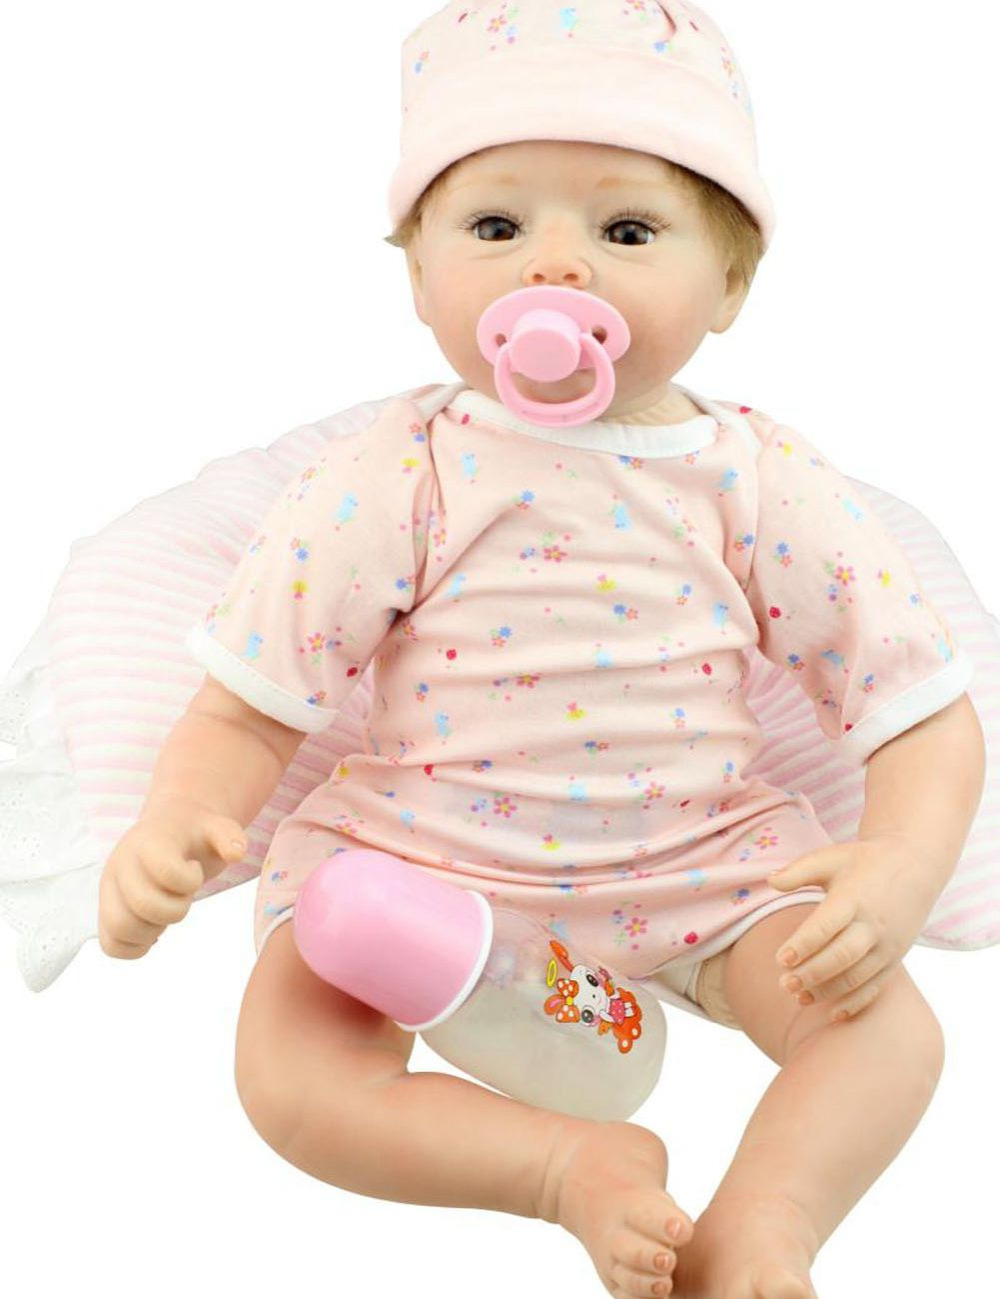 22inch Silicone Lifelike Reborn Baby Alive Doll Girl with Milk Tooth Handmade Realistic Gift Toys Women Collects